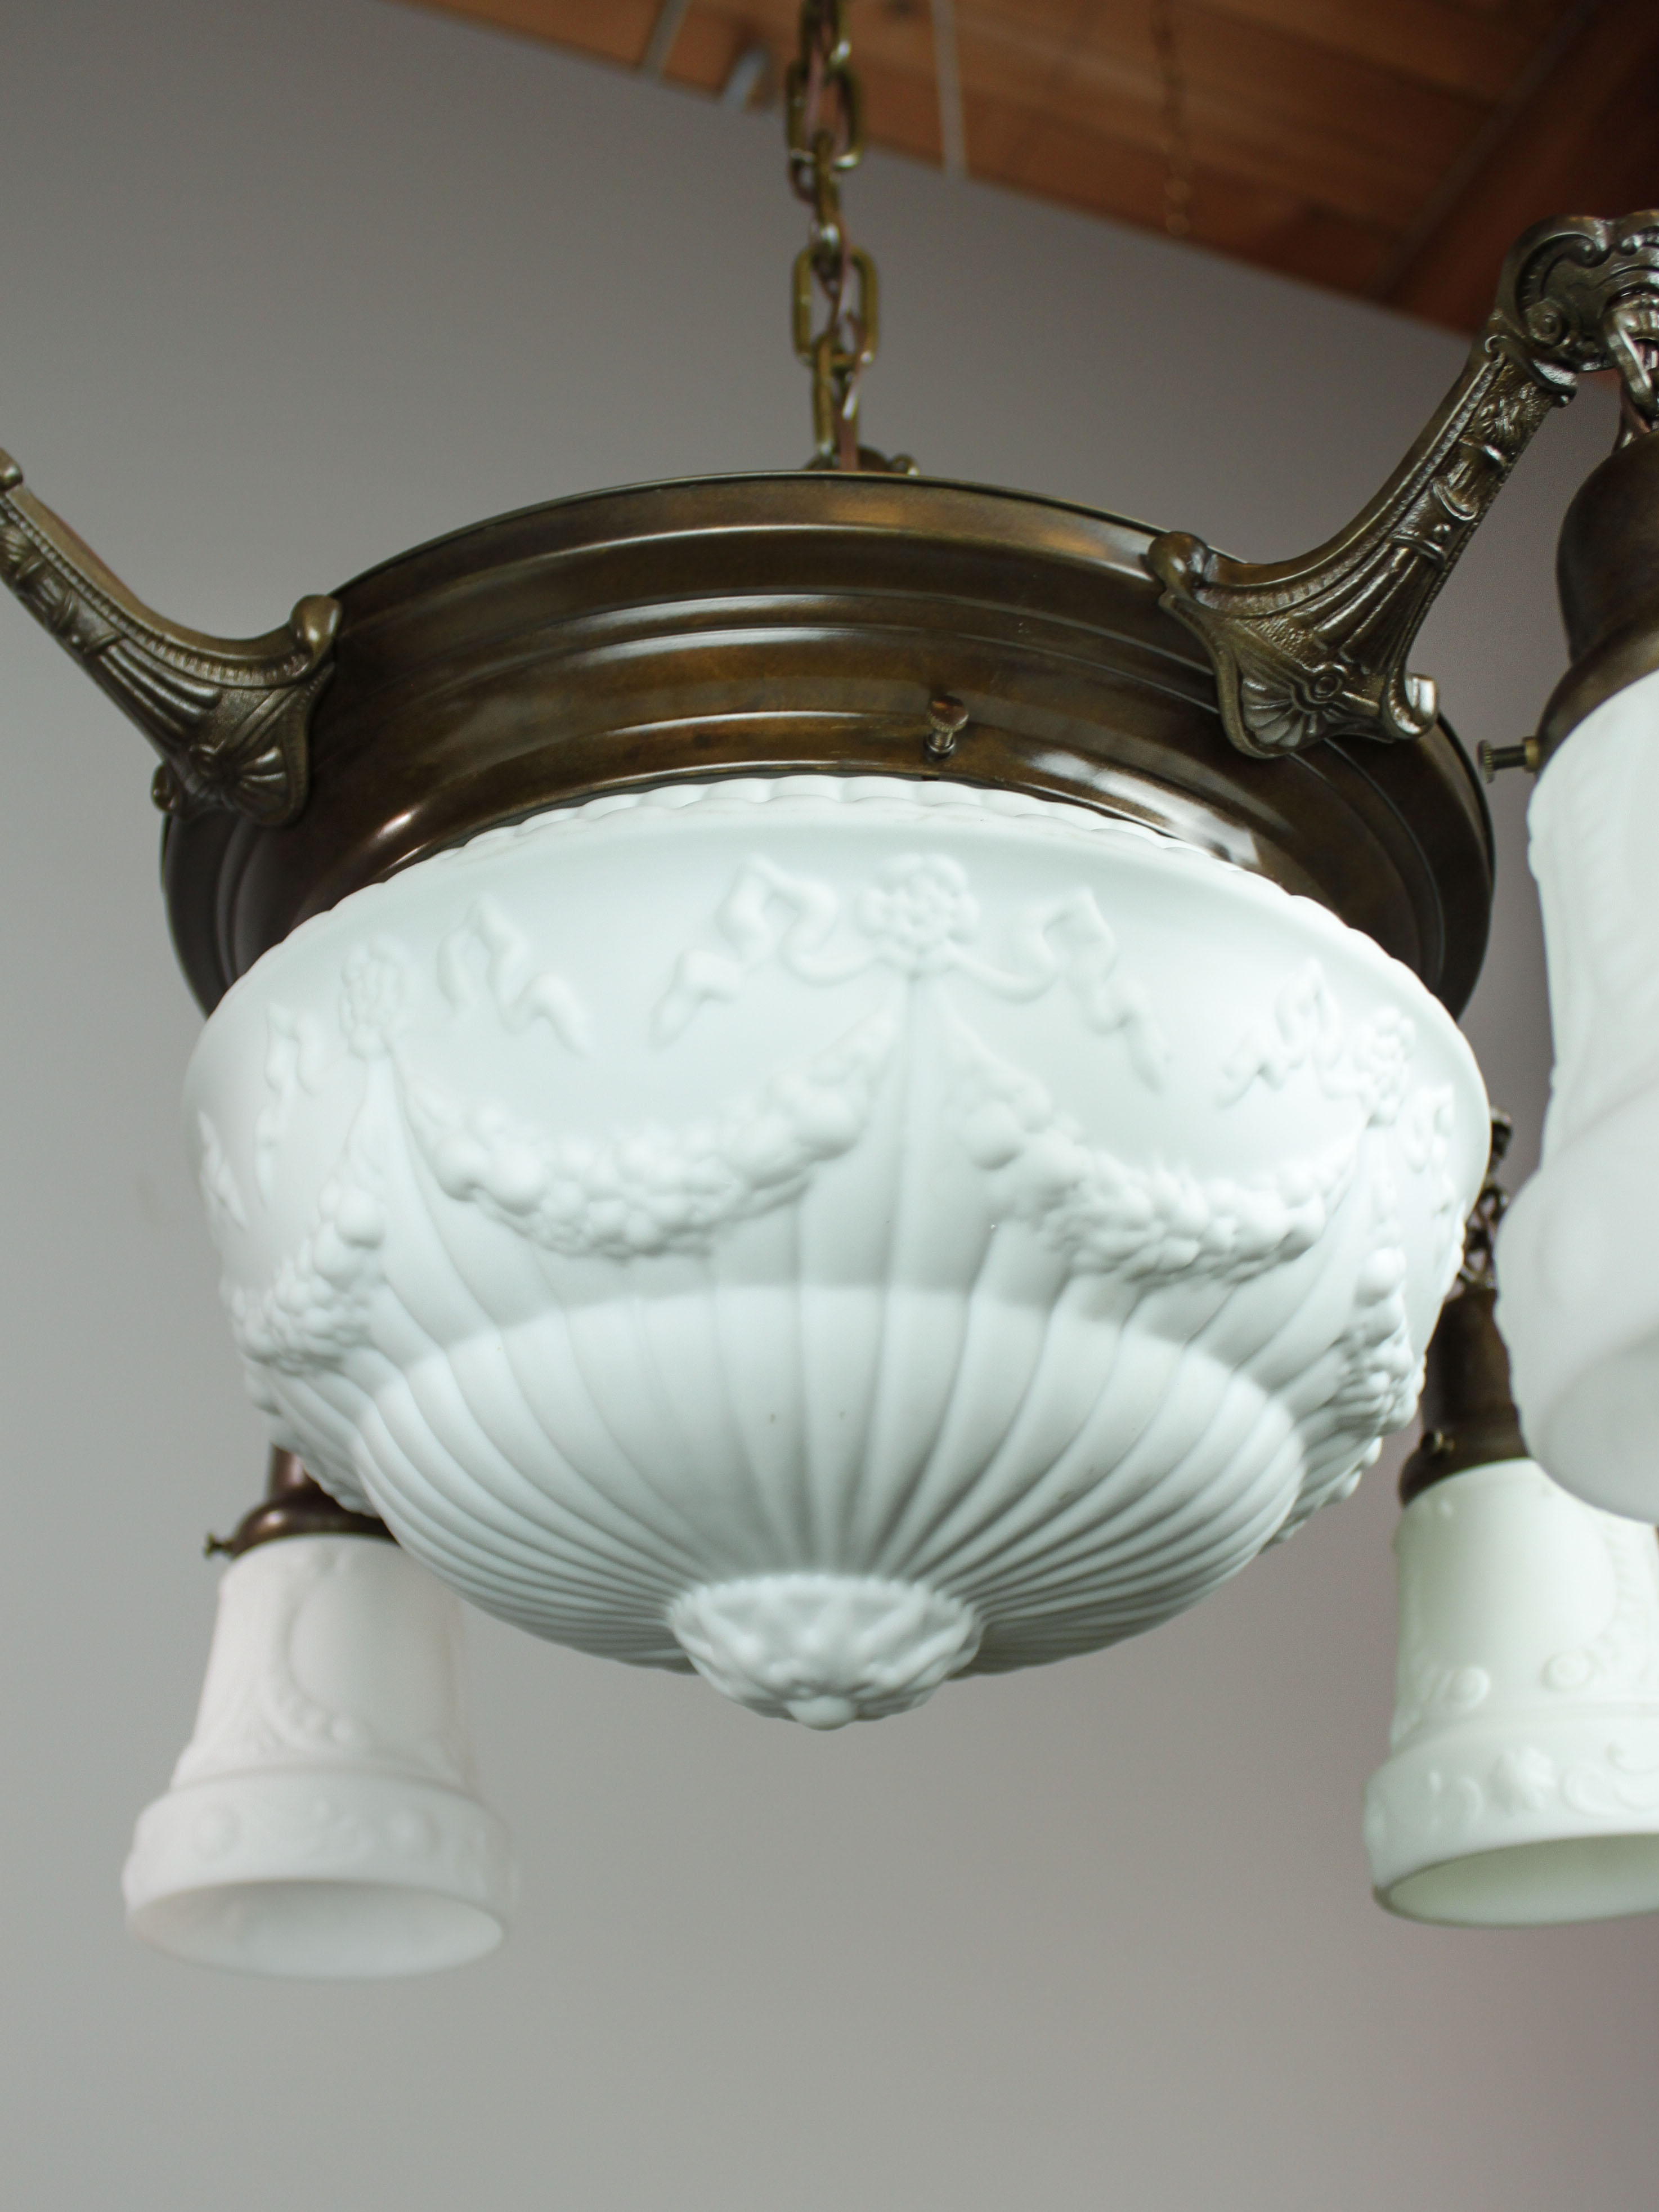 Antique Pan Light Fixture with Milk Glass (4+1 Light) Renew Gallery